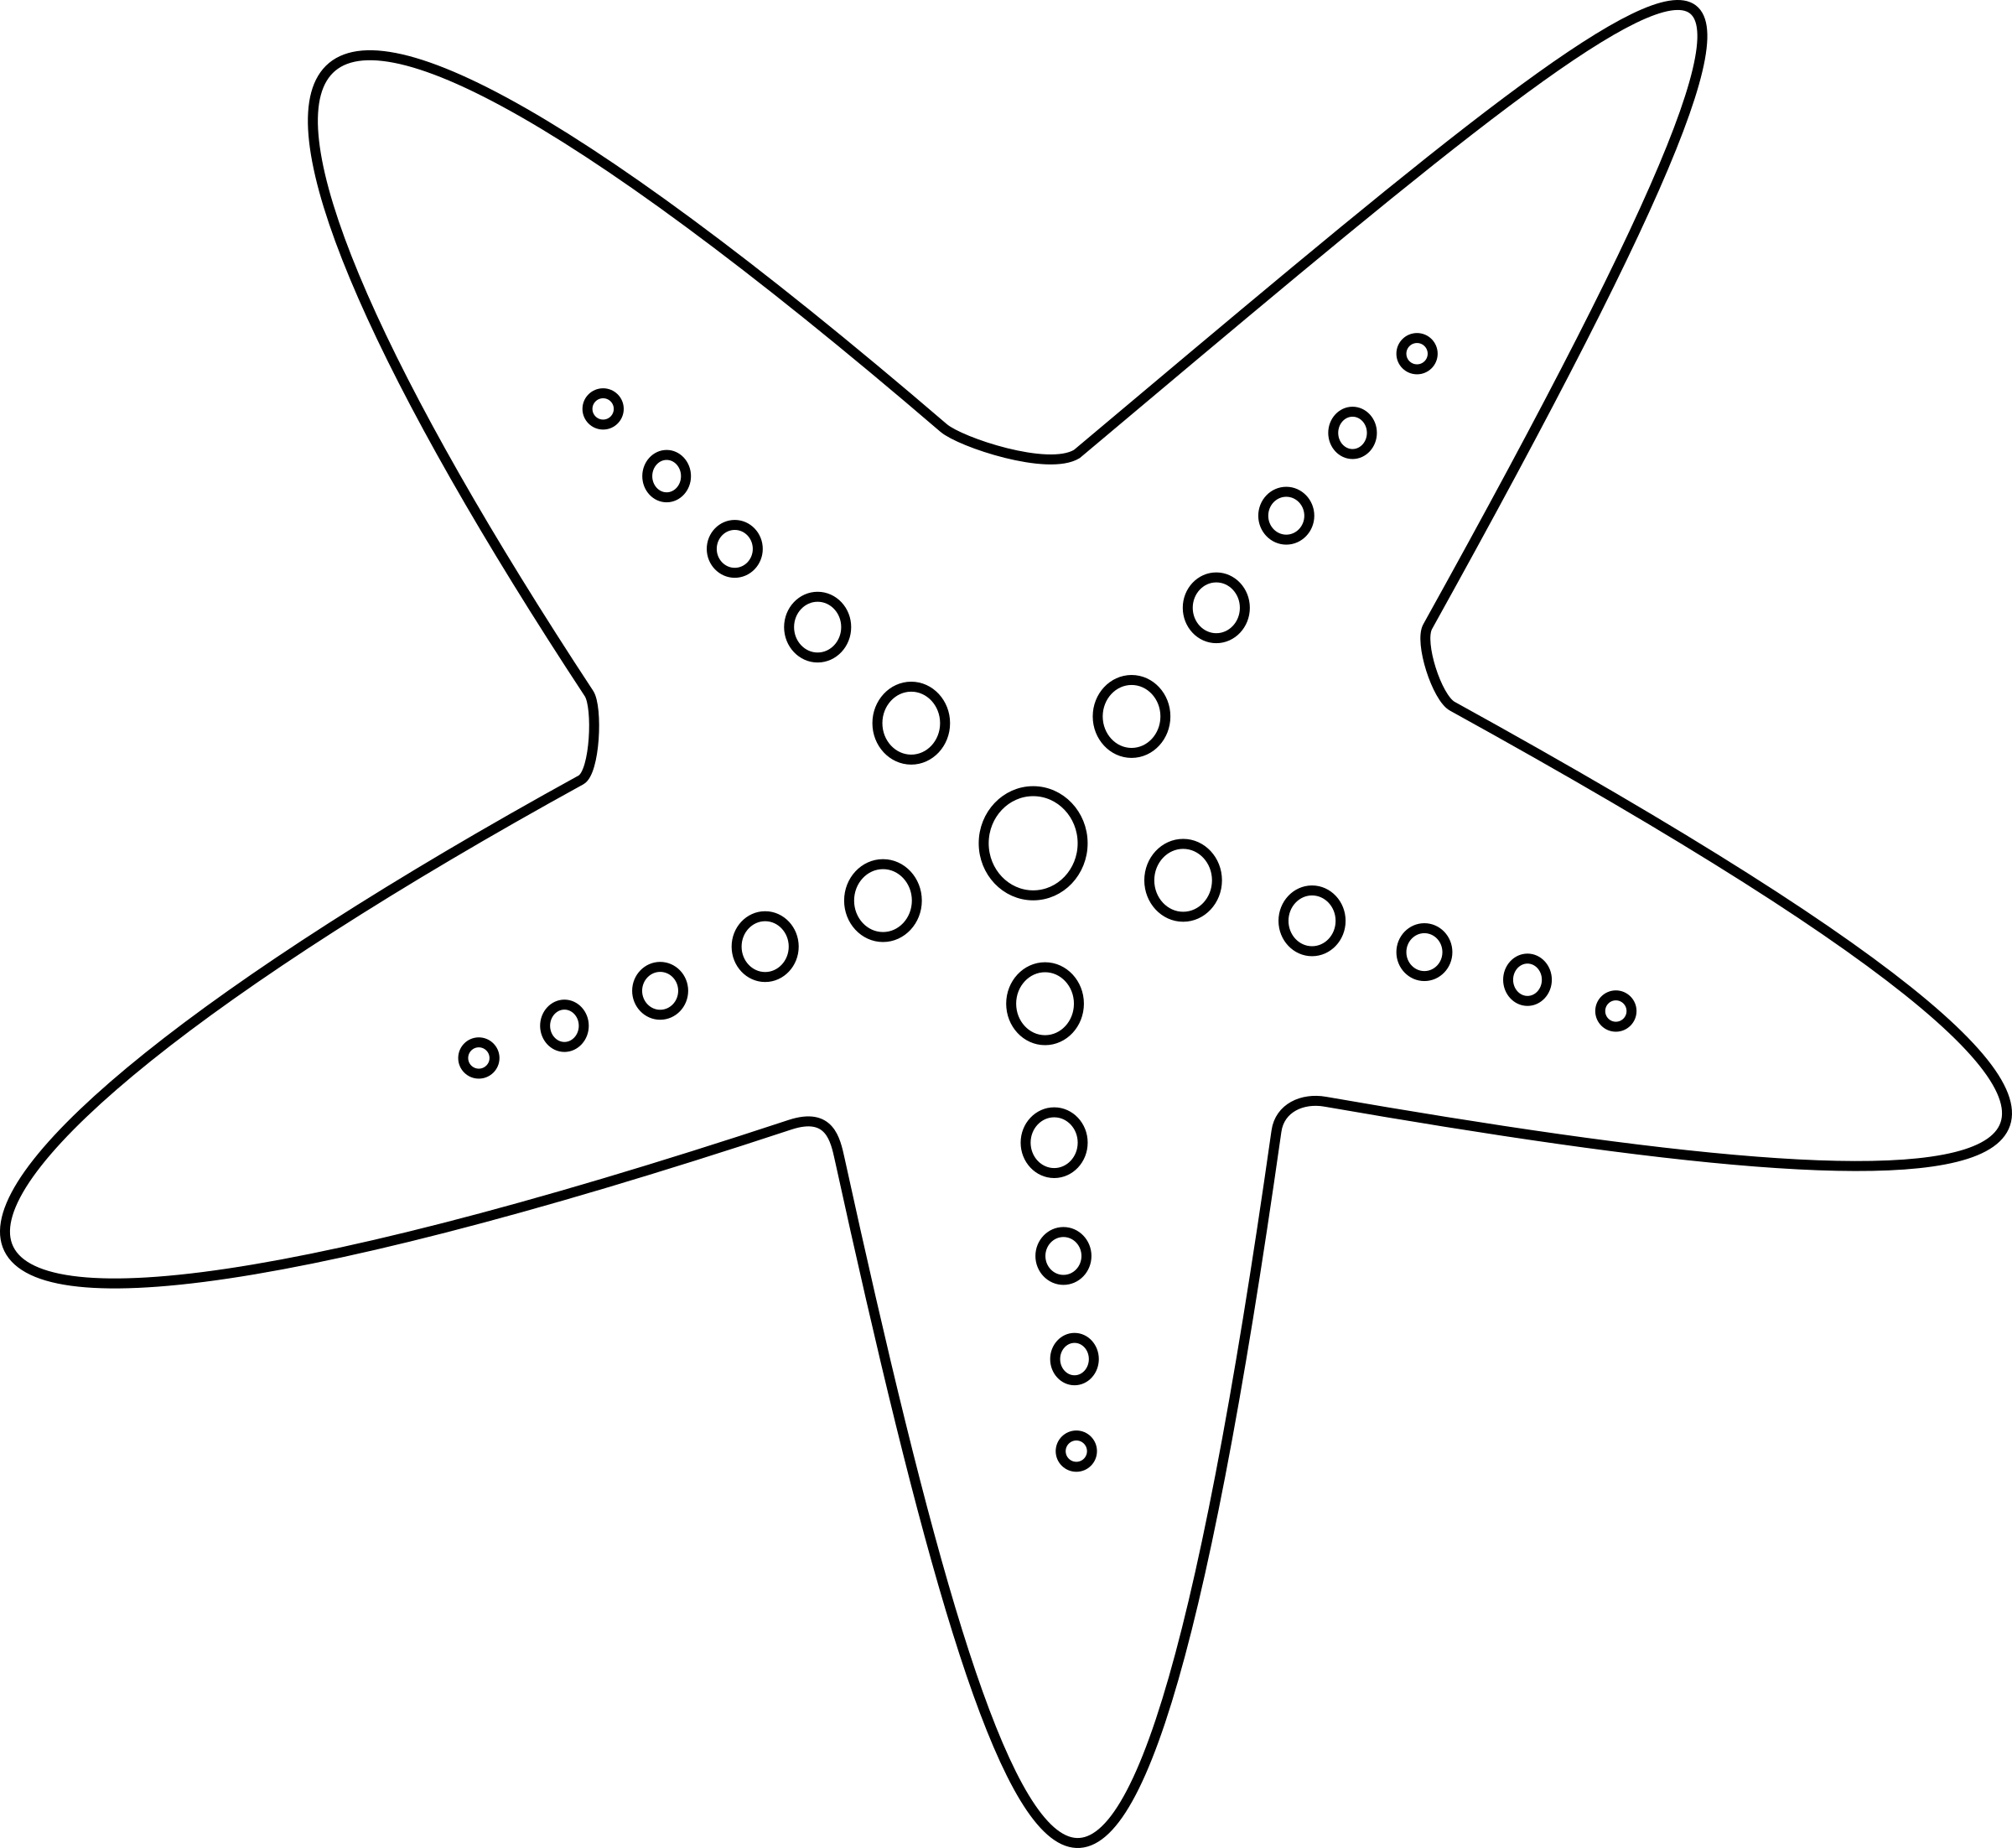 Starfish Outline Clipart